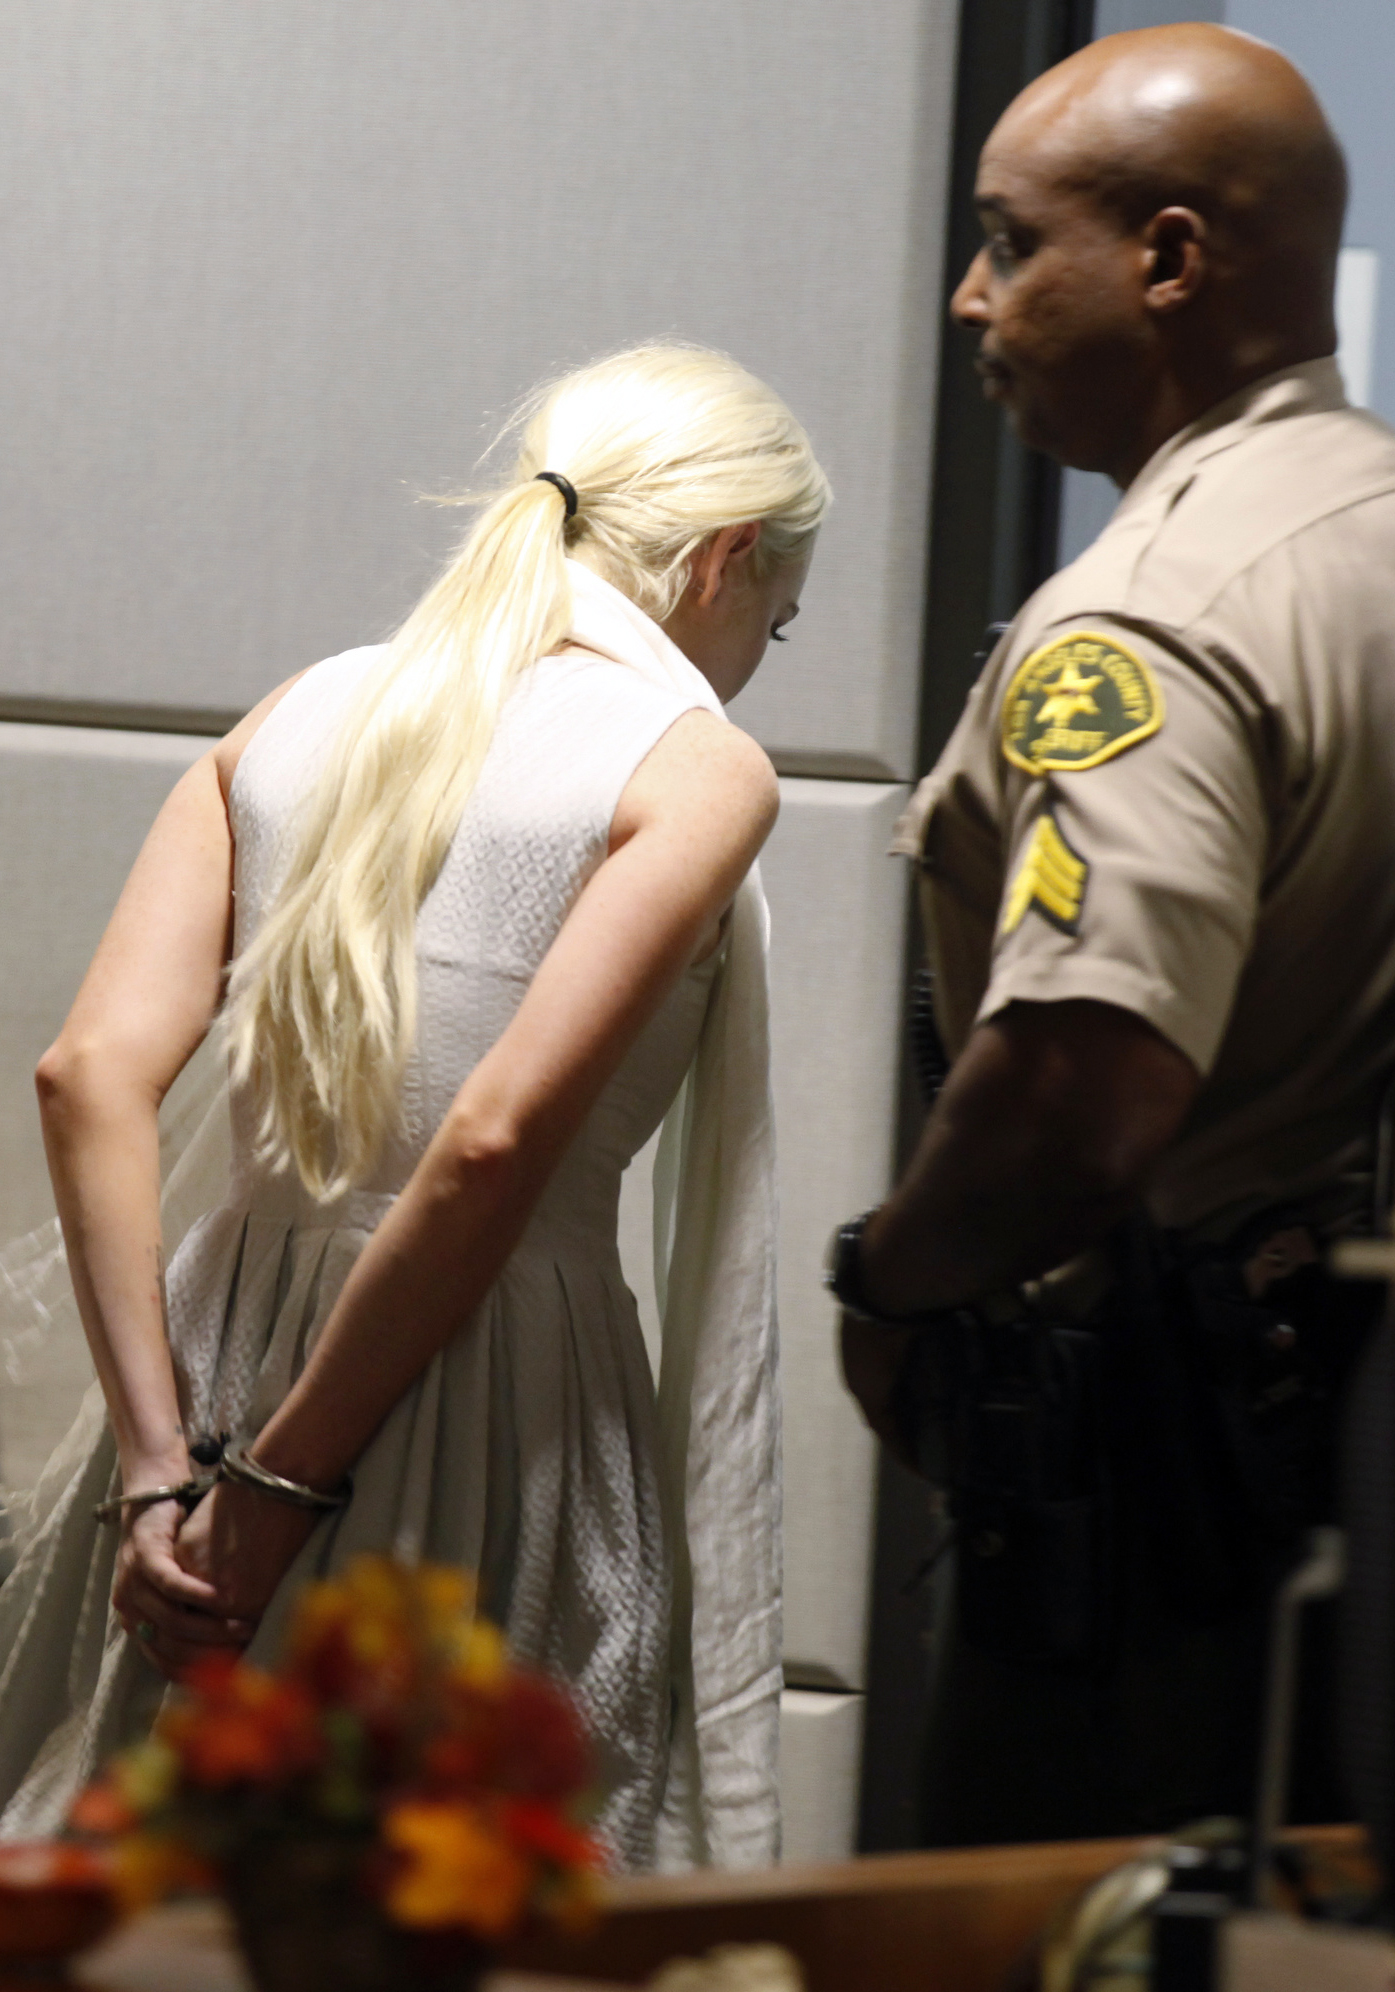 Lindsay Lohan is taken into custody by Los Angeles Country sheriff deputies after a judge found her in violation of probation Wednesday, Oct. 19, 2011, in Los Angeles. (AP Photo/Mark Boster, Pool)